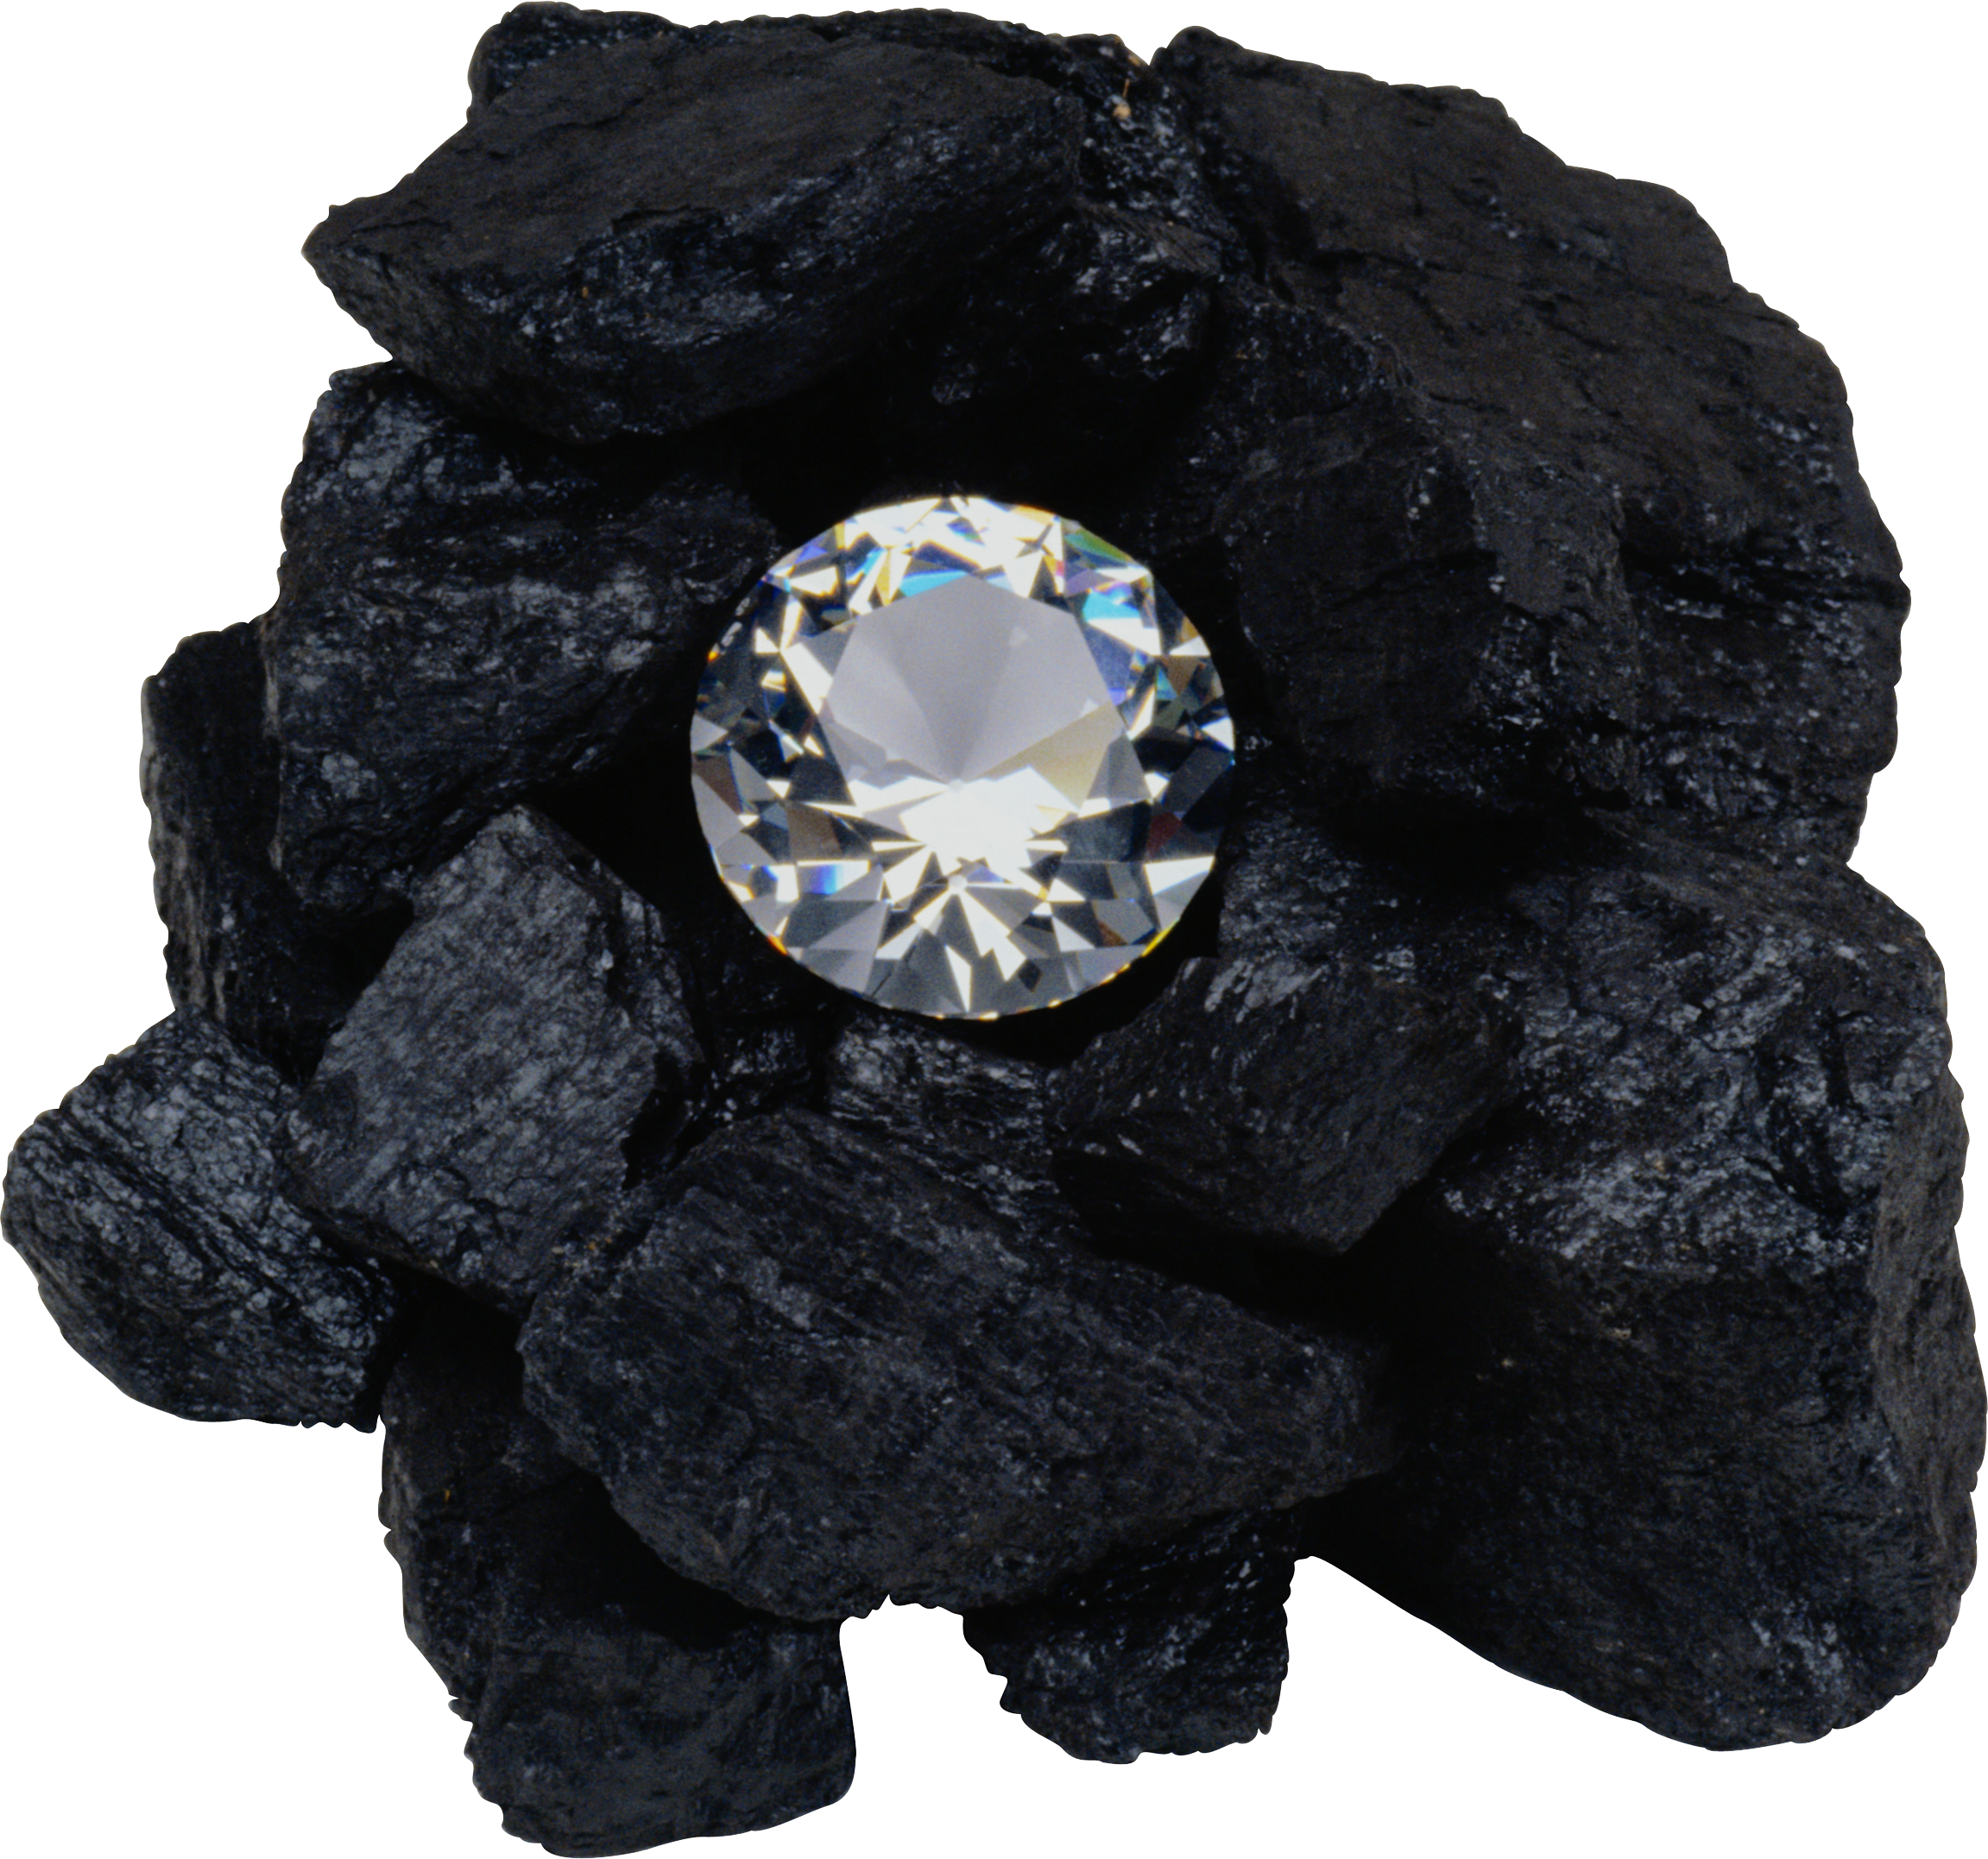 chunk diamond coal wikipedia anthracite wiki